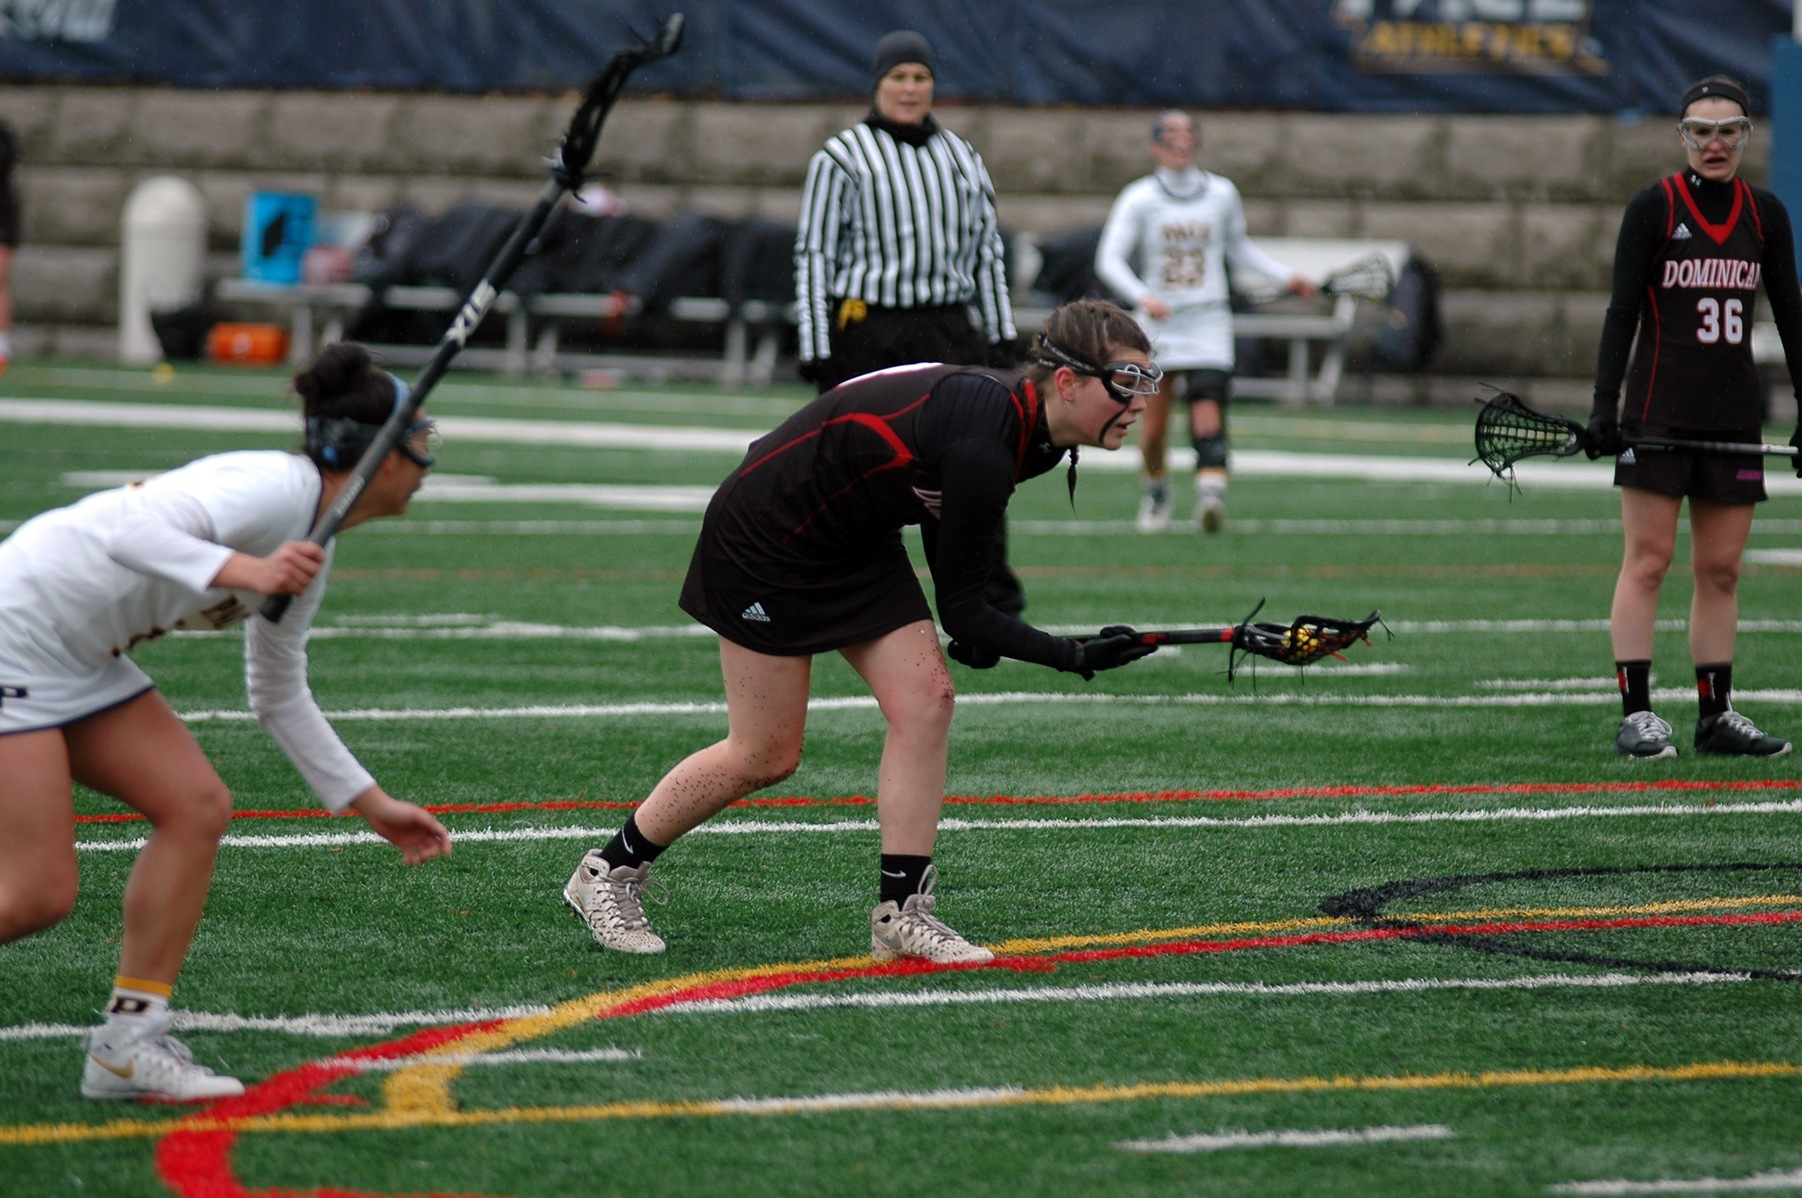 The women's lacrosse team improved to 2-1 in CACC play with a win over Holy Family University.